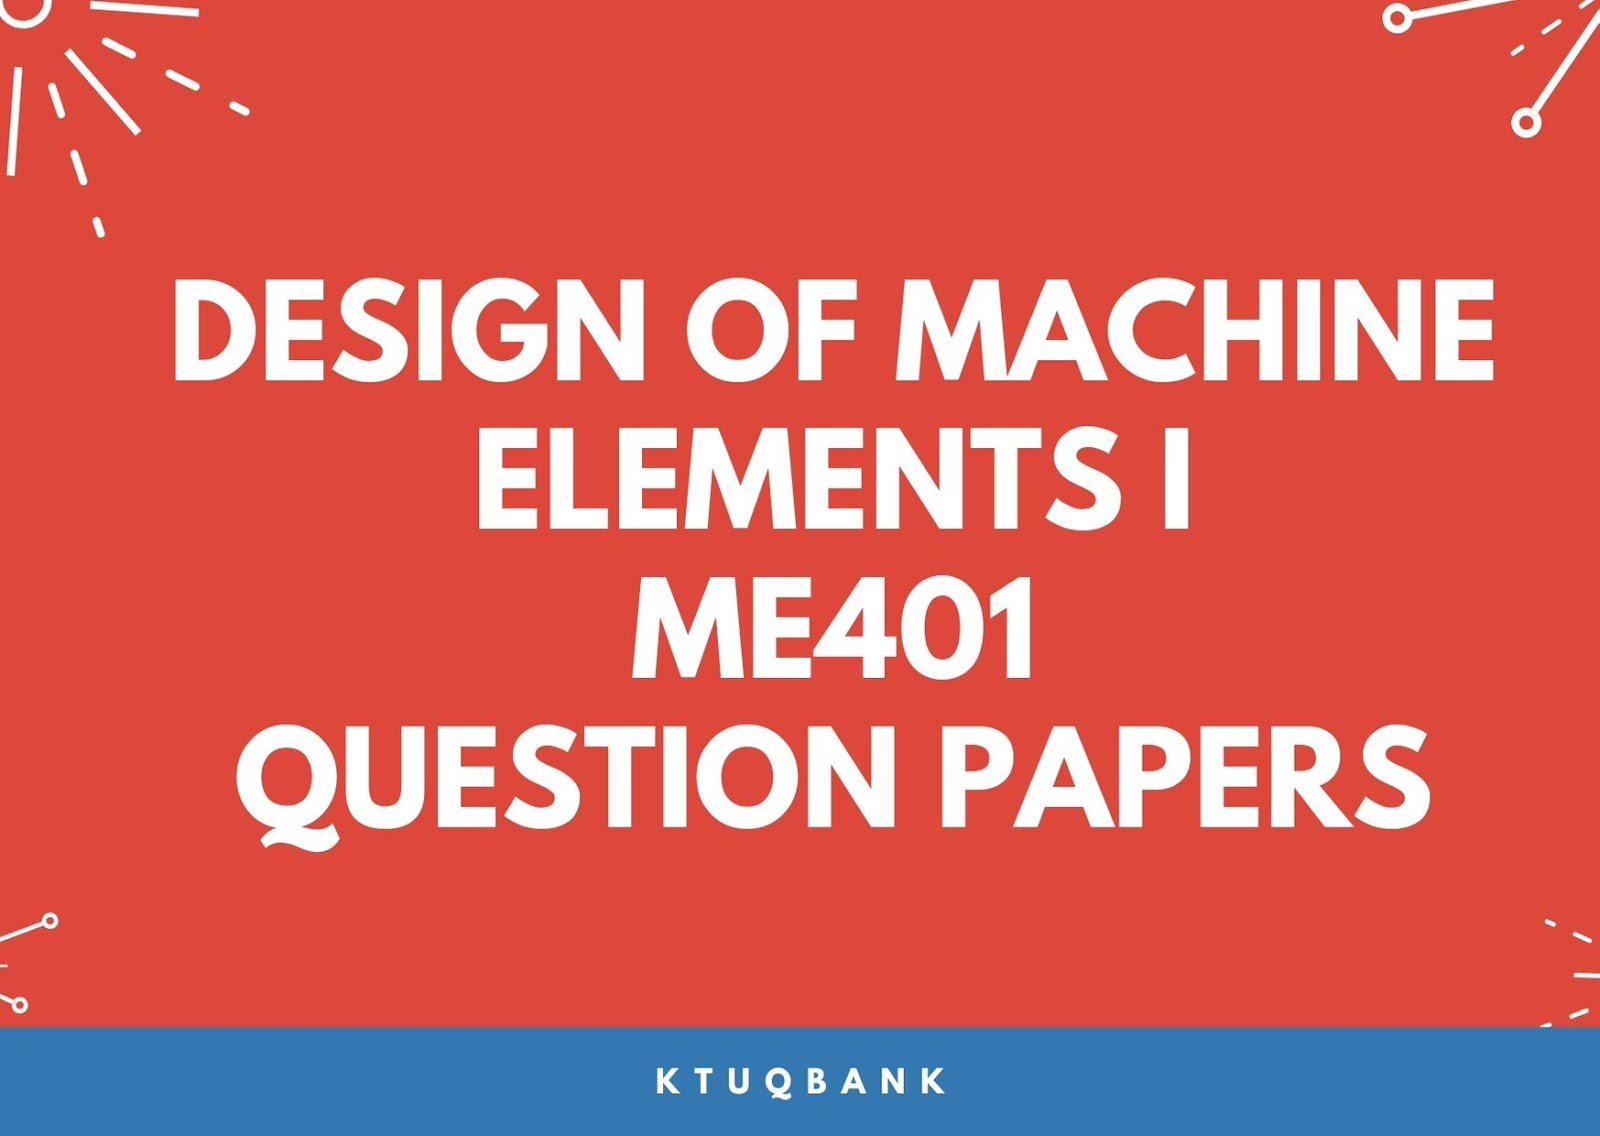 Design of Machine Elements I  | ME401 | Question Papers (2015 batch)